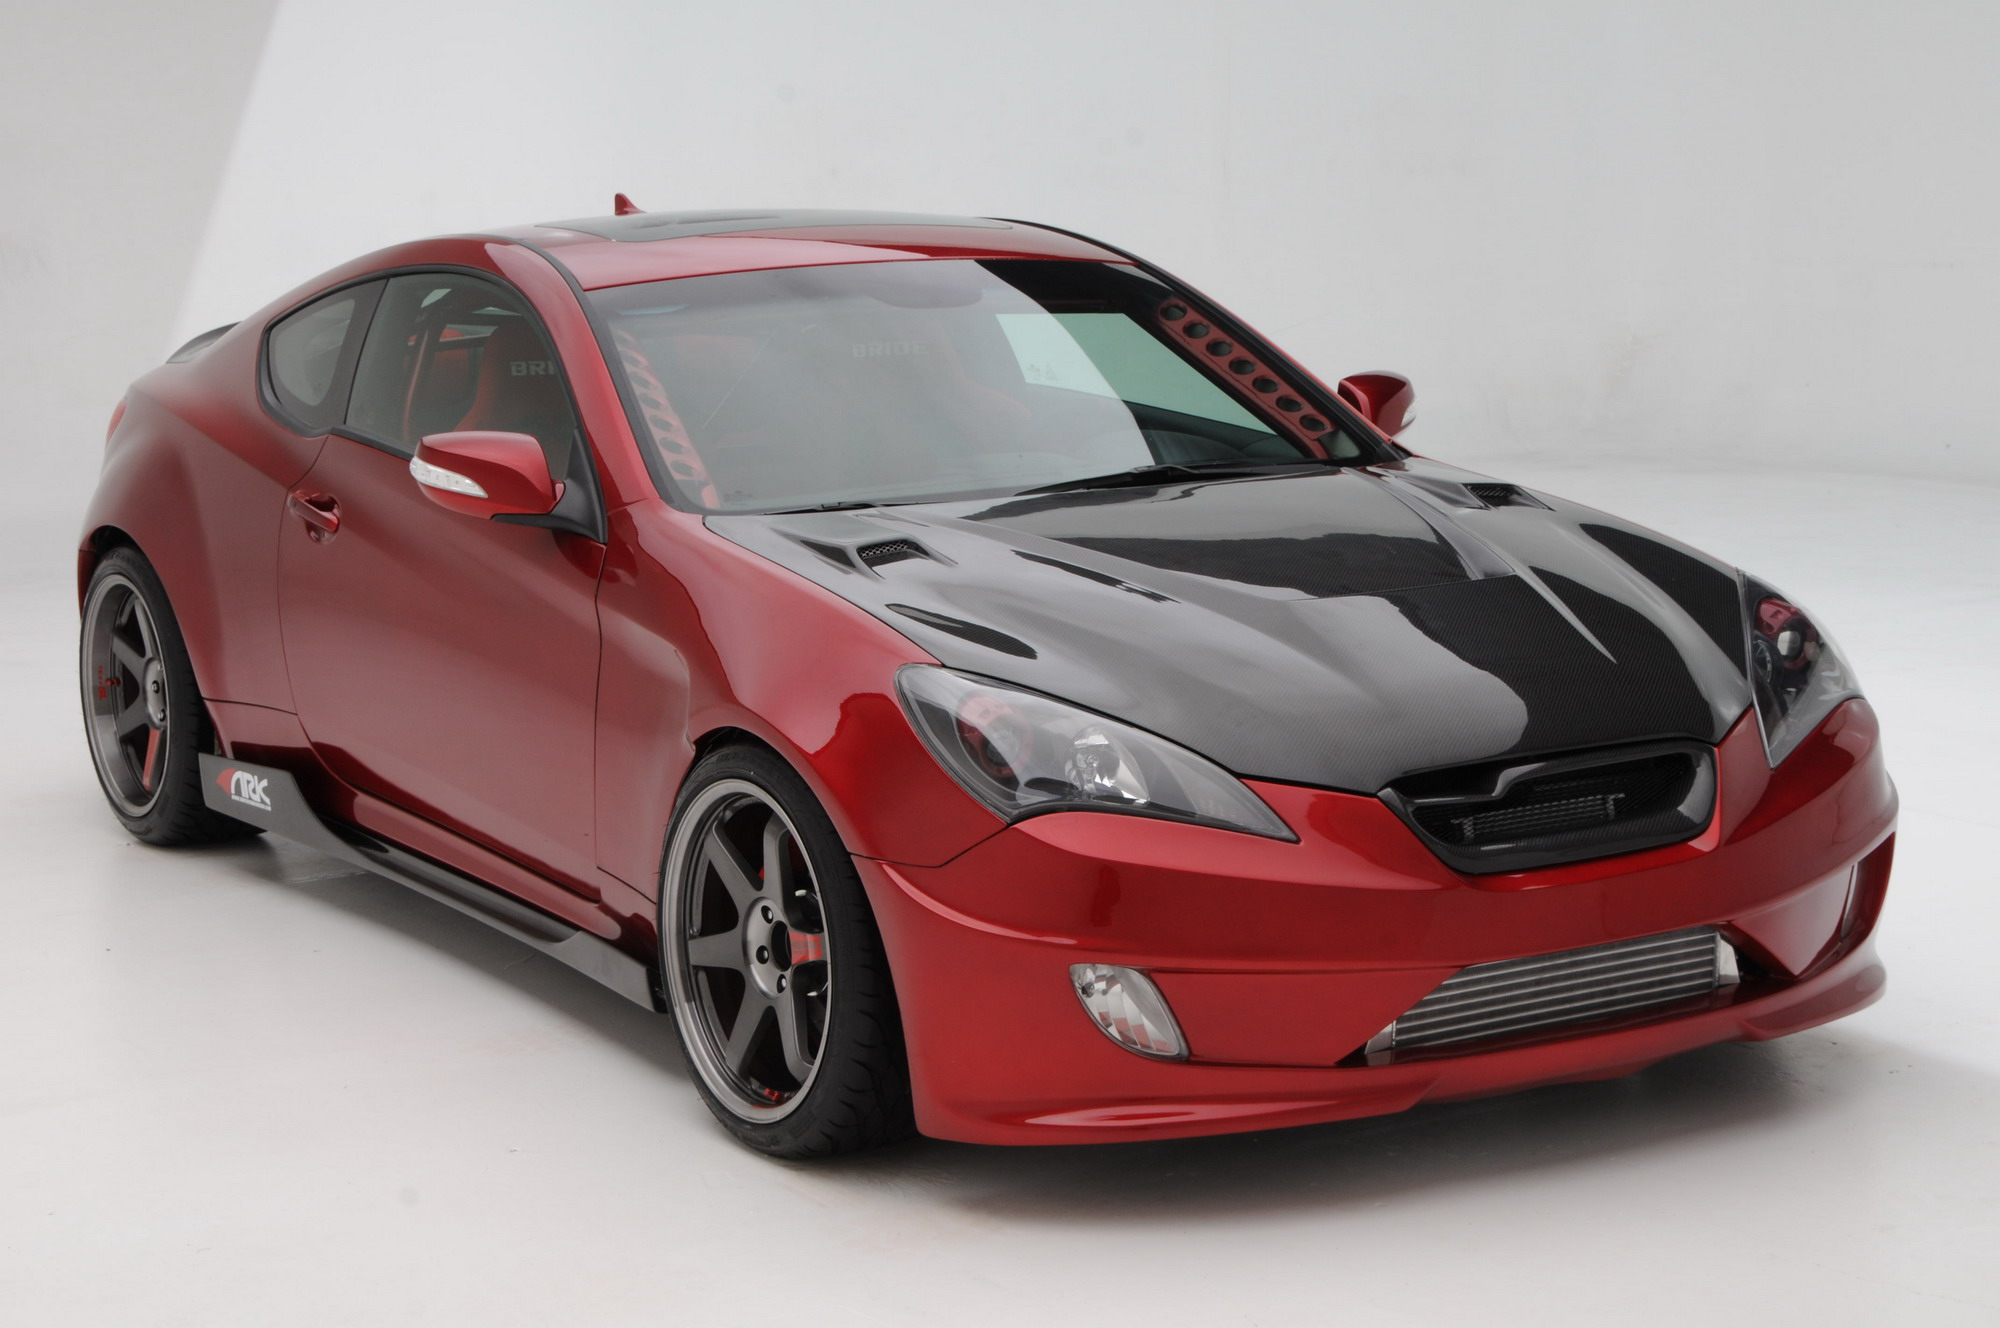 2010 hyundai genesis coupe by ark review top speed. Black Bedroom Furniture Sets. Home Design Ideas